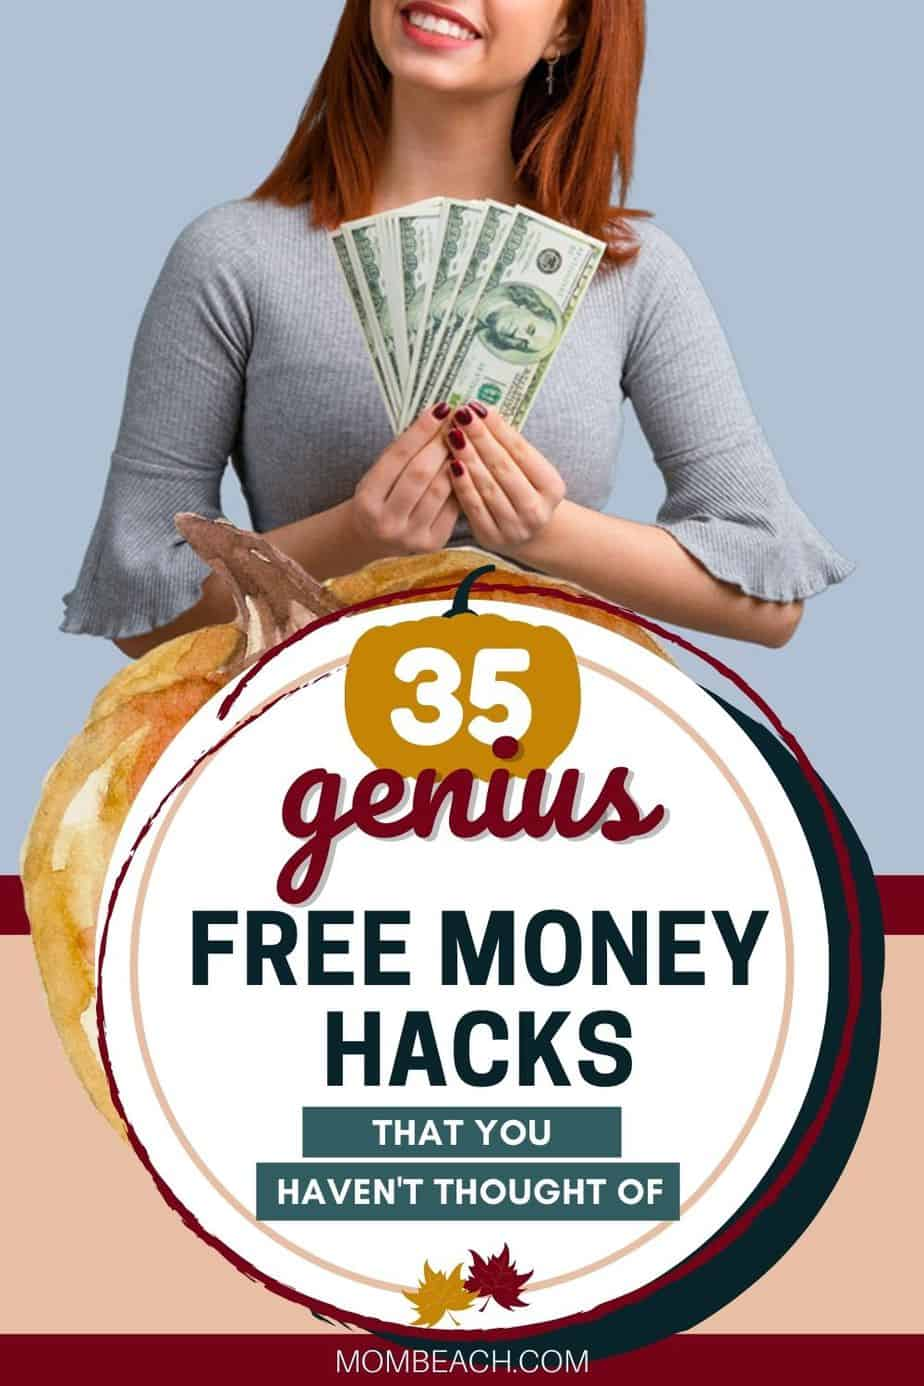 You will not believe these amazing free money hacks! Start earning money for free now from your home. Earn now in your spare time. Getting free money is easy and simple and for beginners. It is so easy to get money sent to your Paypal account. #freemoneyhacks #freemoney #moneyhacks #moneytips